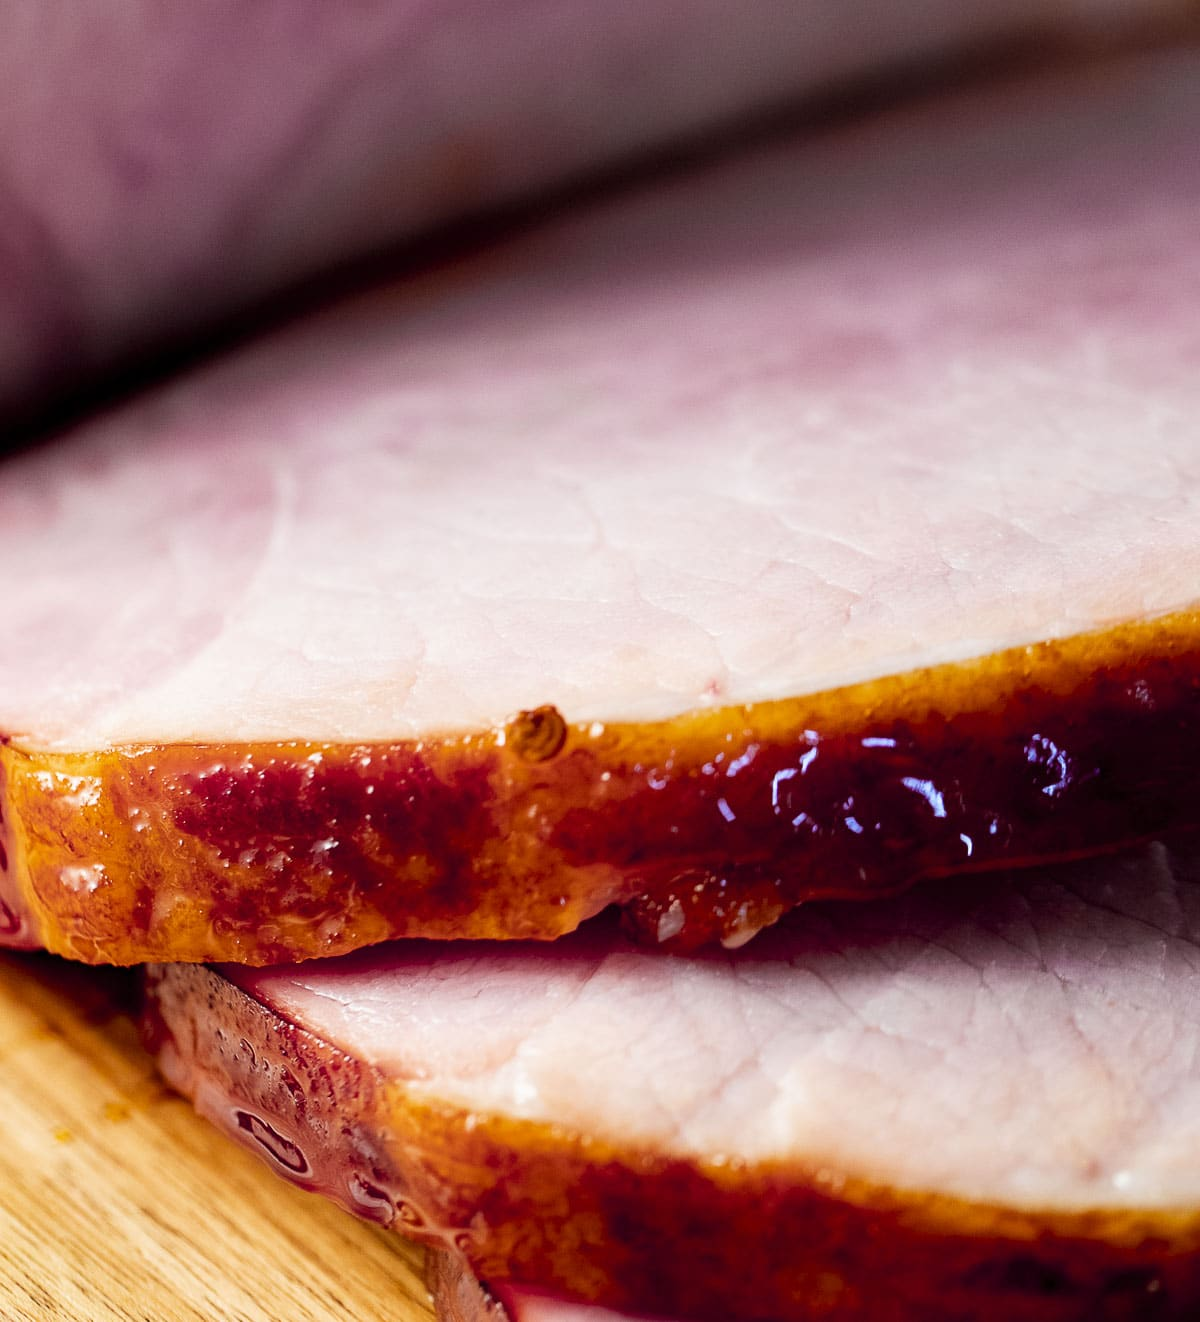 Close up view of ham slices with glaze.